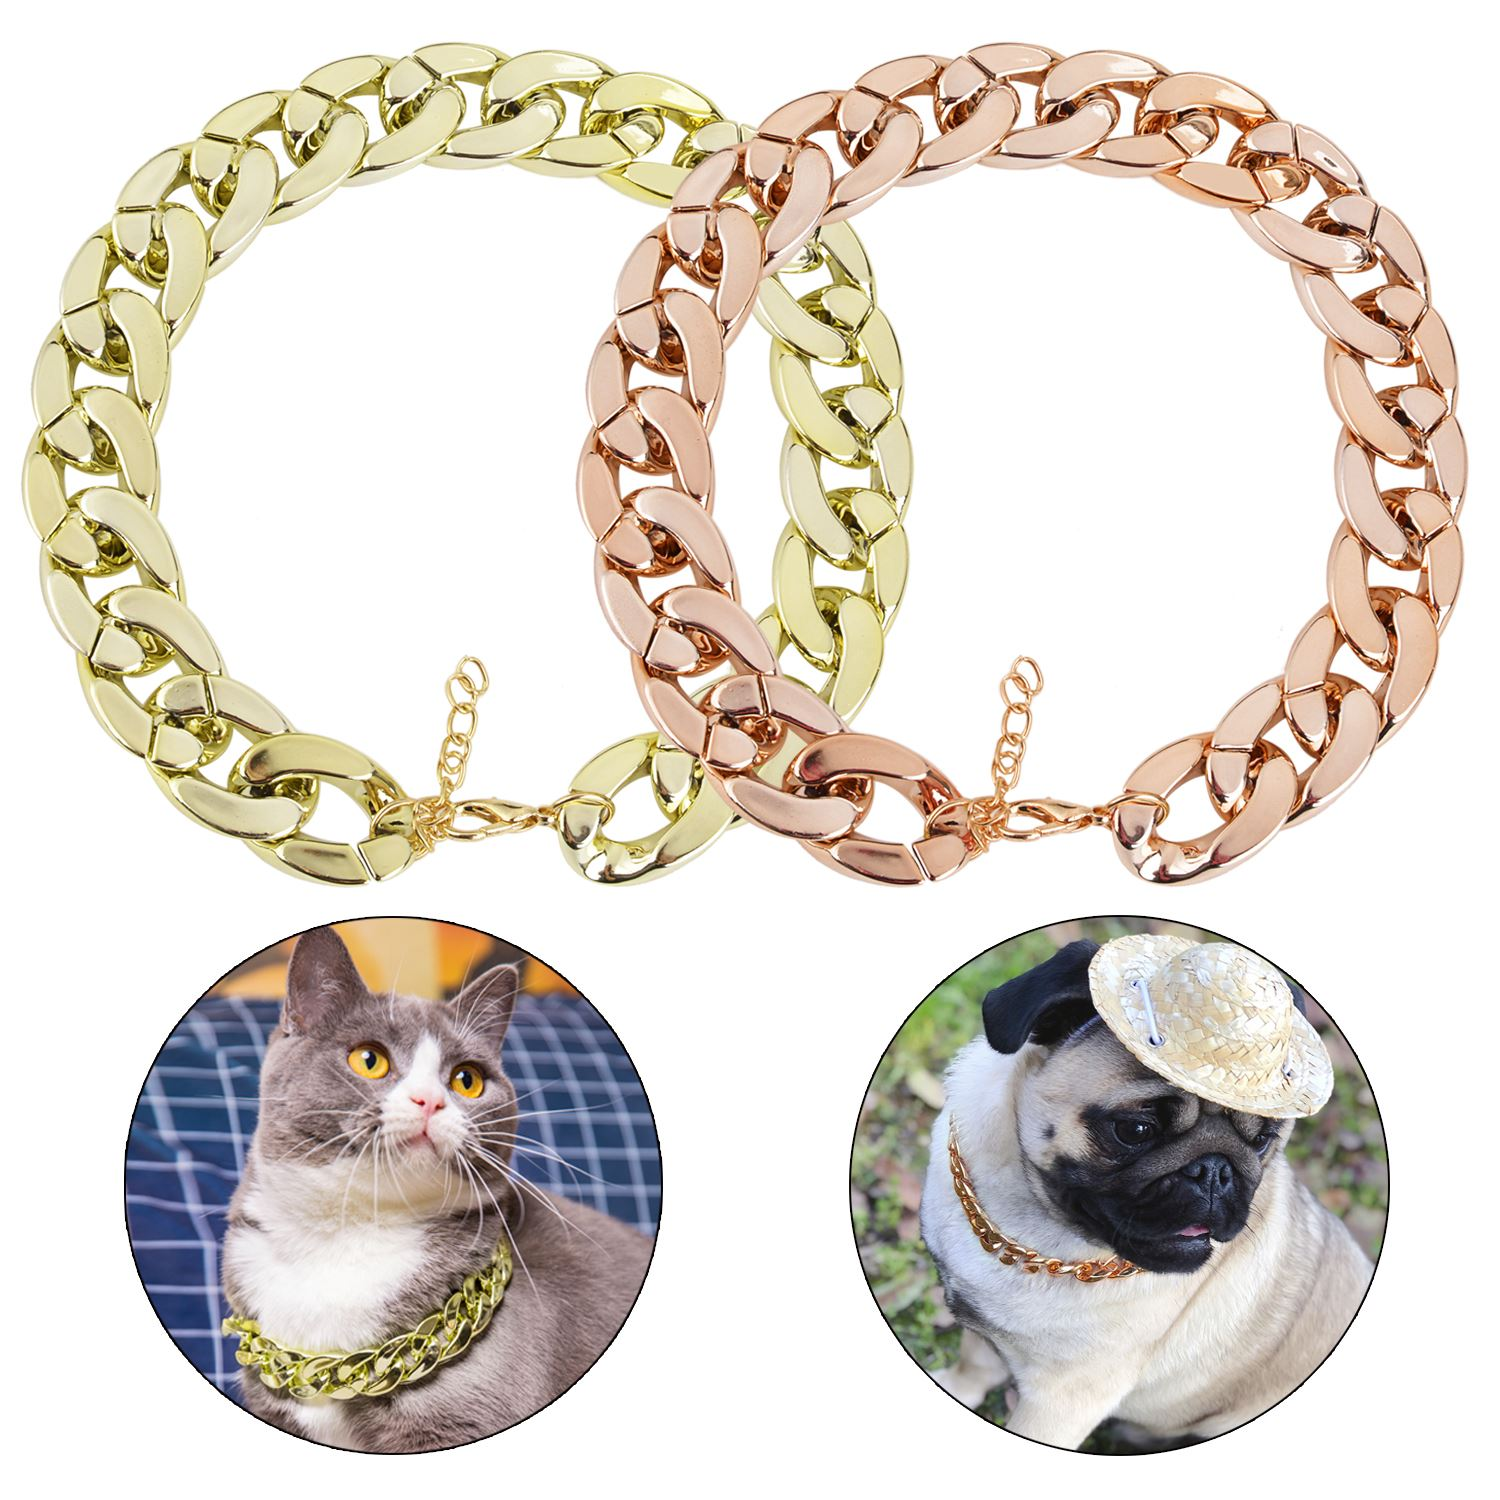 2019 New Fashion font b Pet b font Dog Necklace Collars Thick Gold Chain Plated Plastic